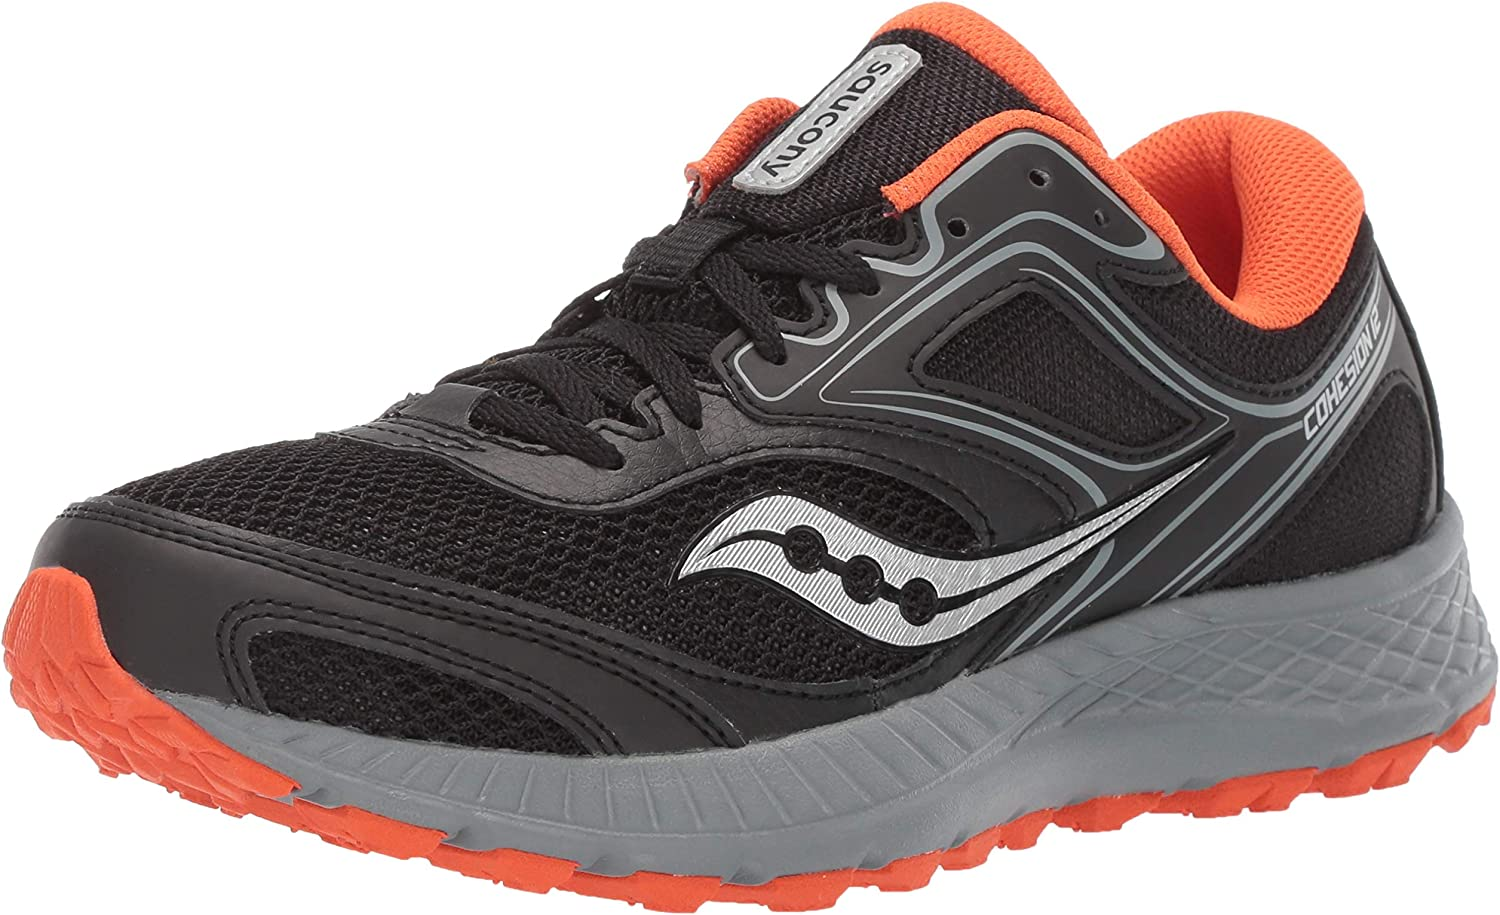 Saucony Men's S20475-1 Trail Running Shoe